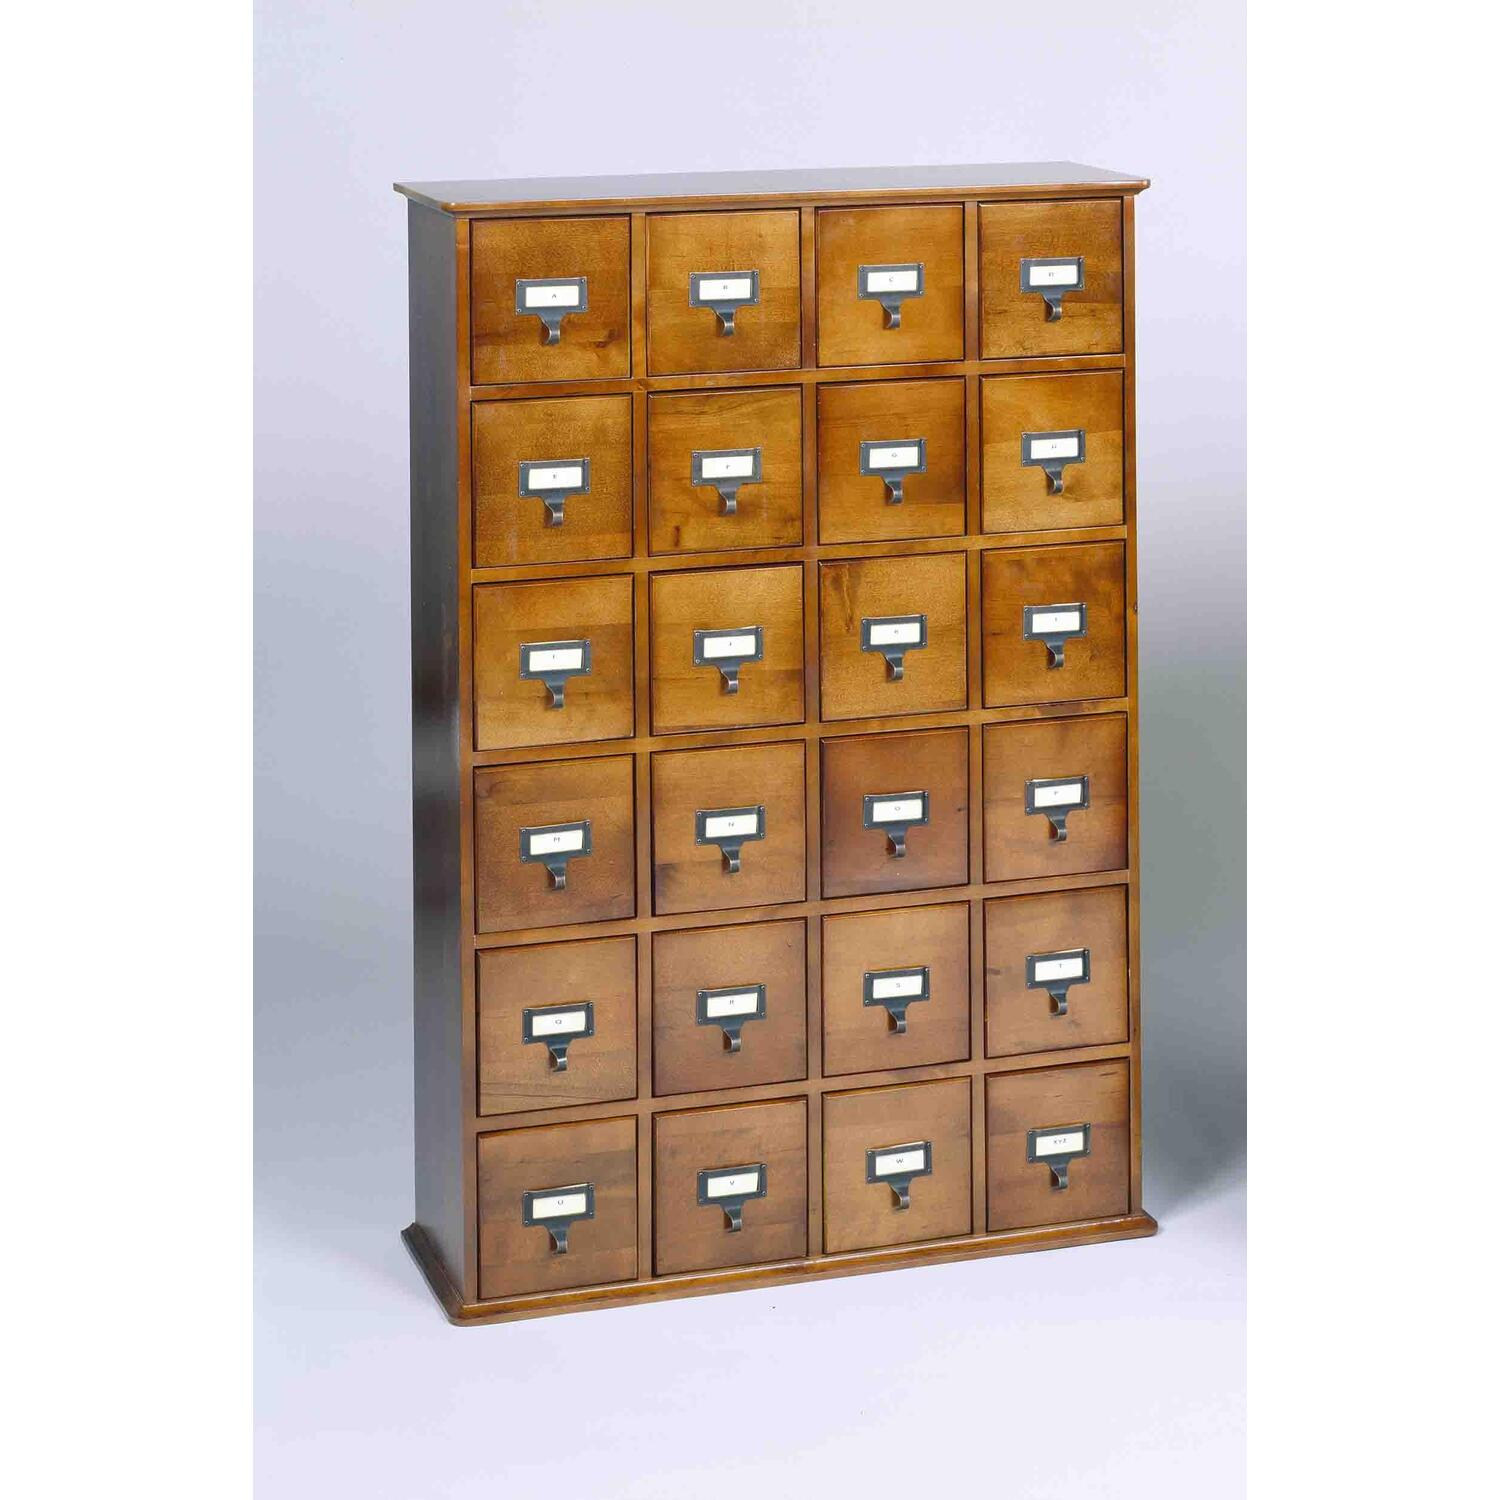 Library_card_file_multimedia_cabinet on Vintage Baby Furniture Stores